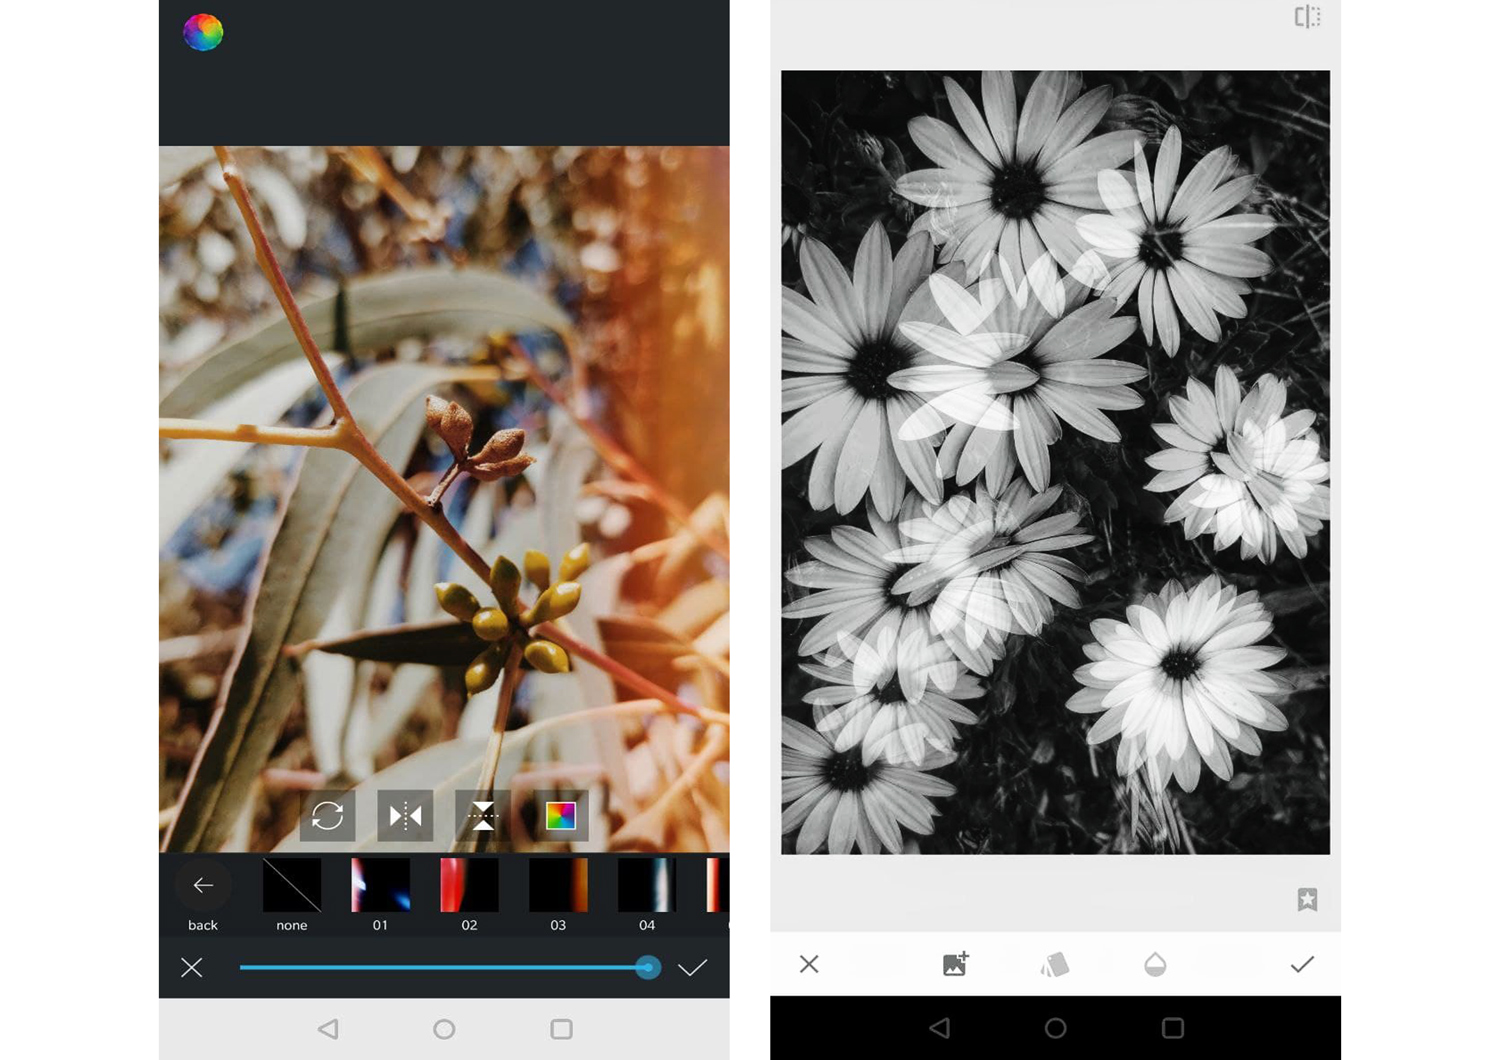 editing apps for creative phone photography